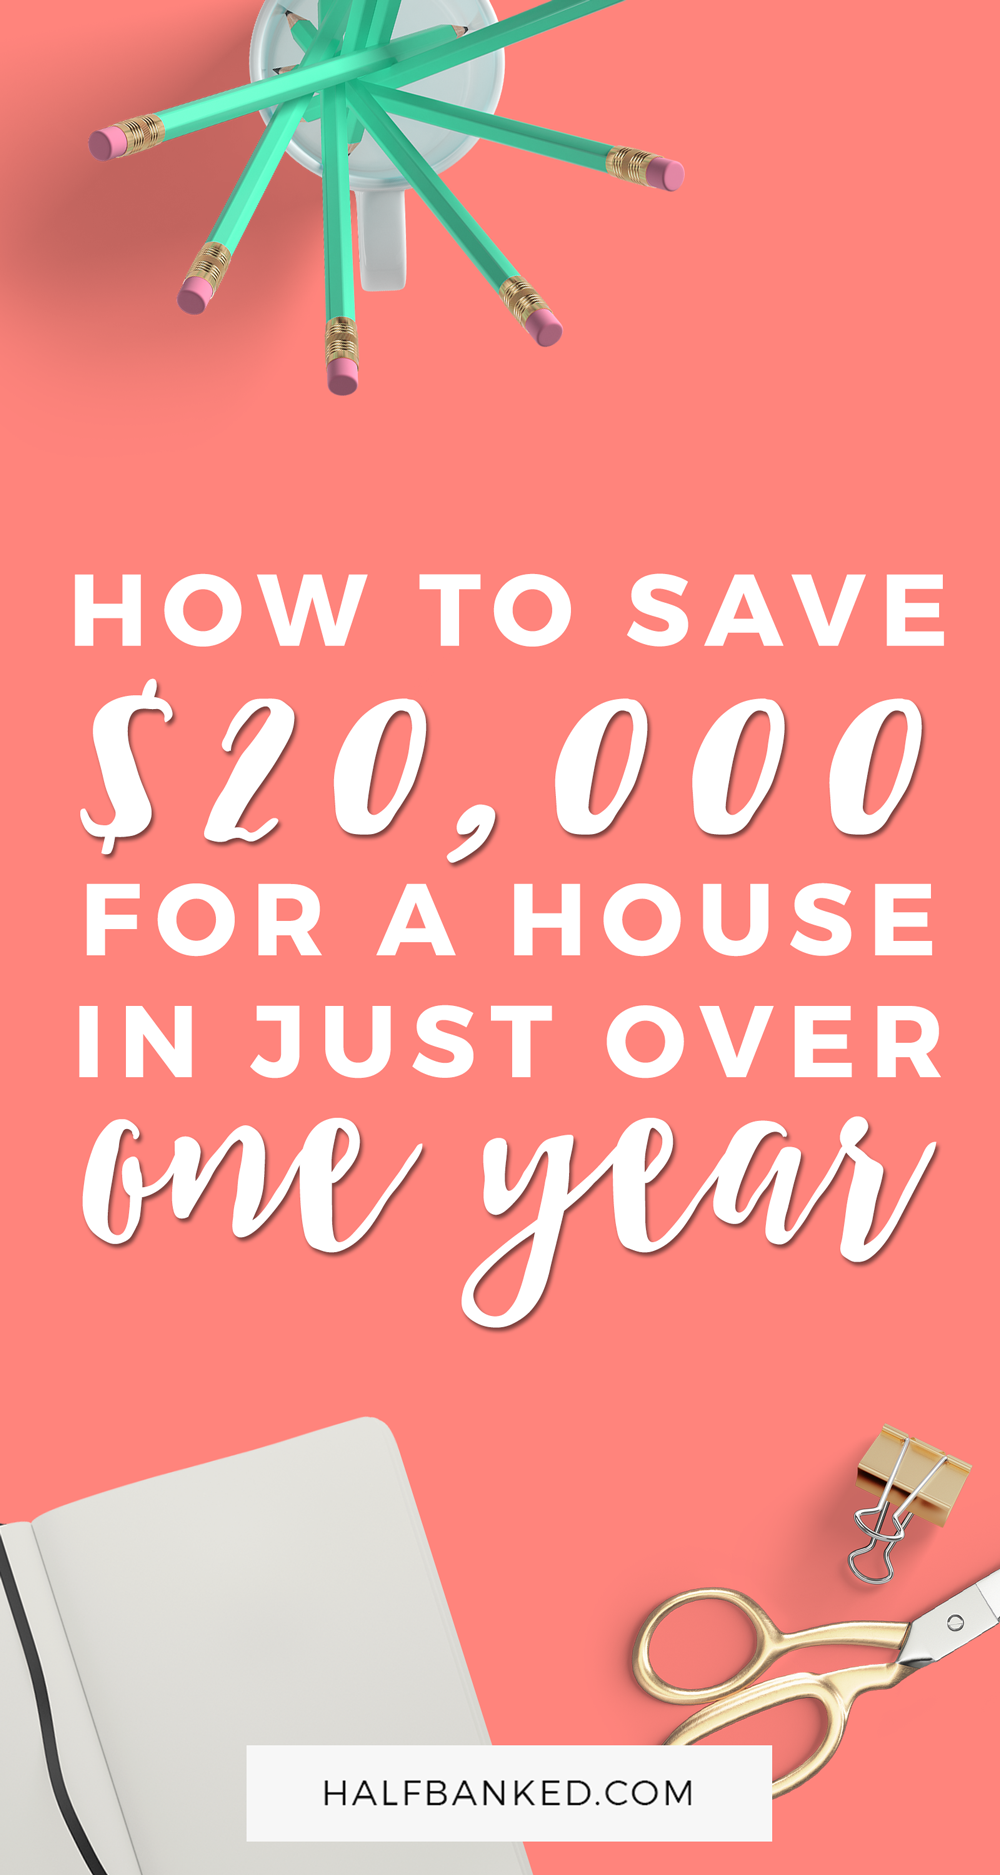 The exact dos and don'ts you need to save a five figure down payment in just over a year.